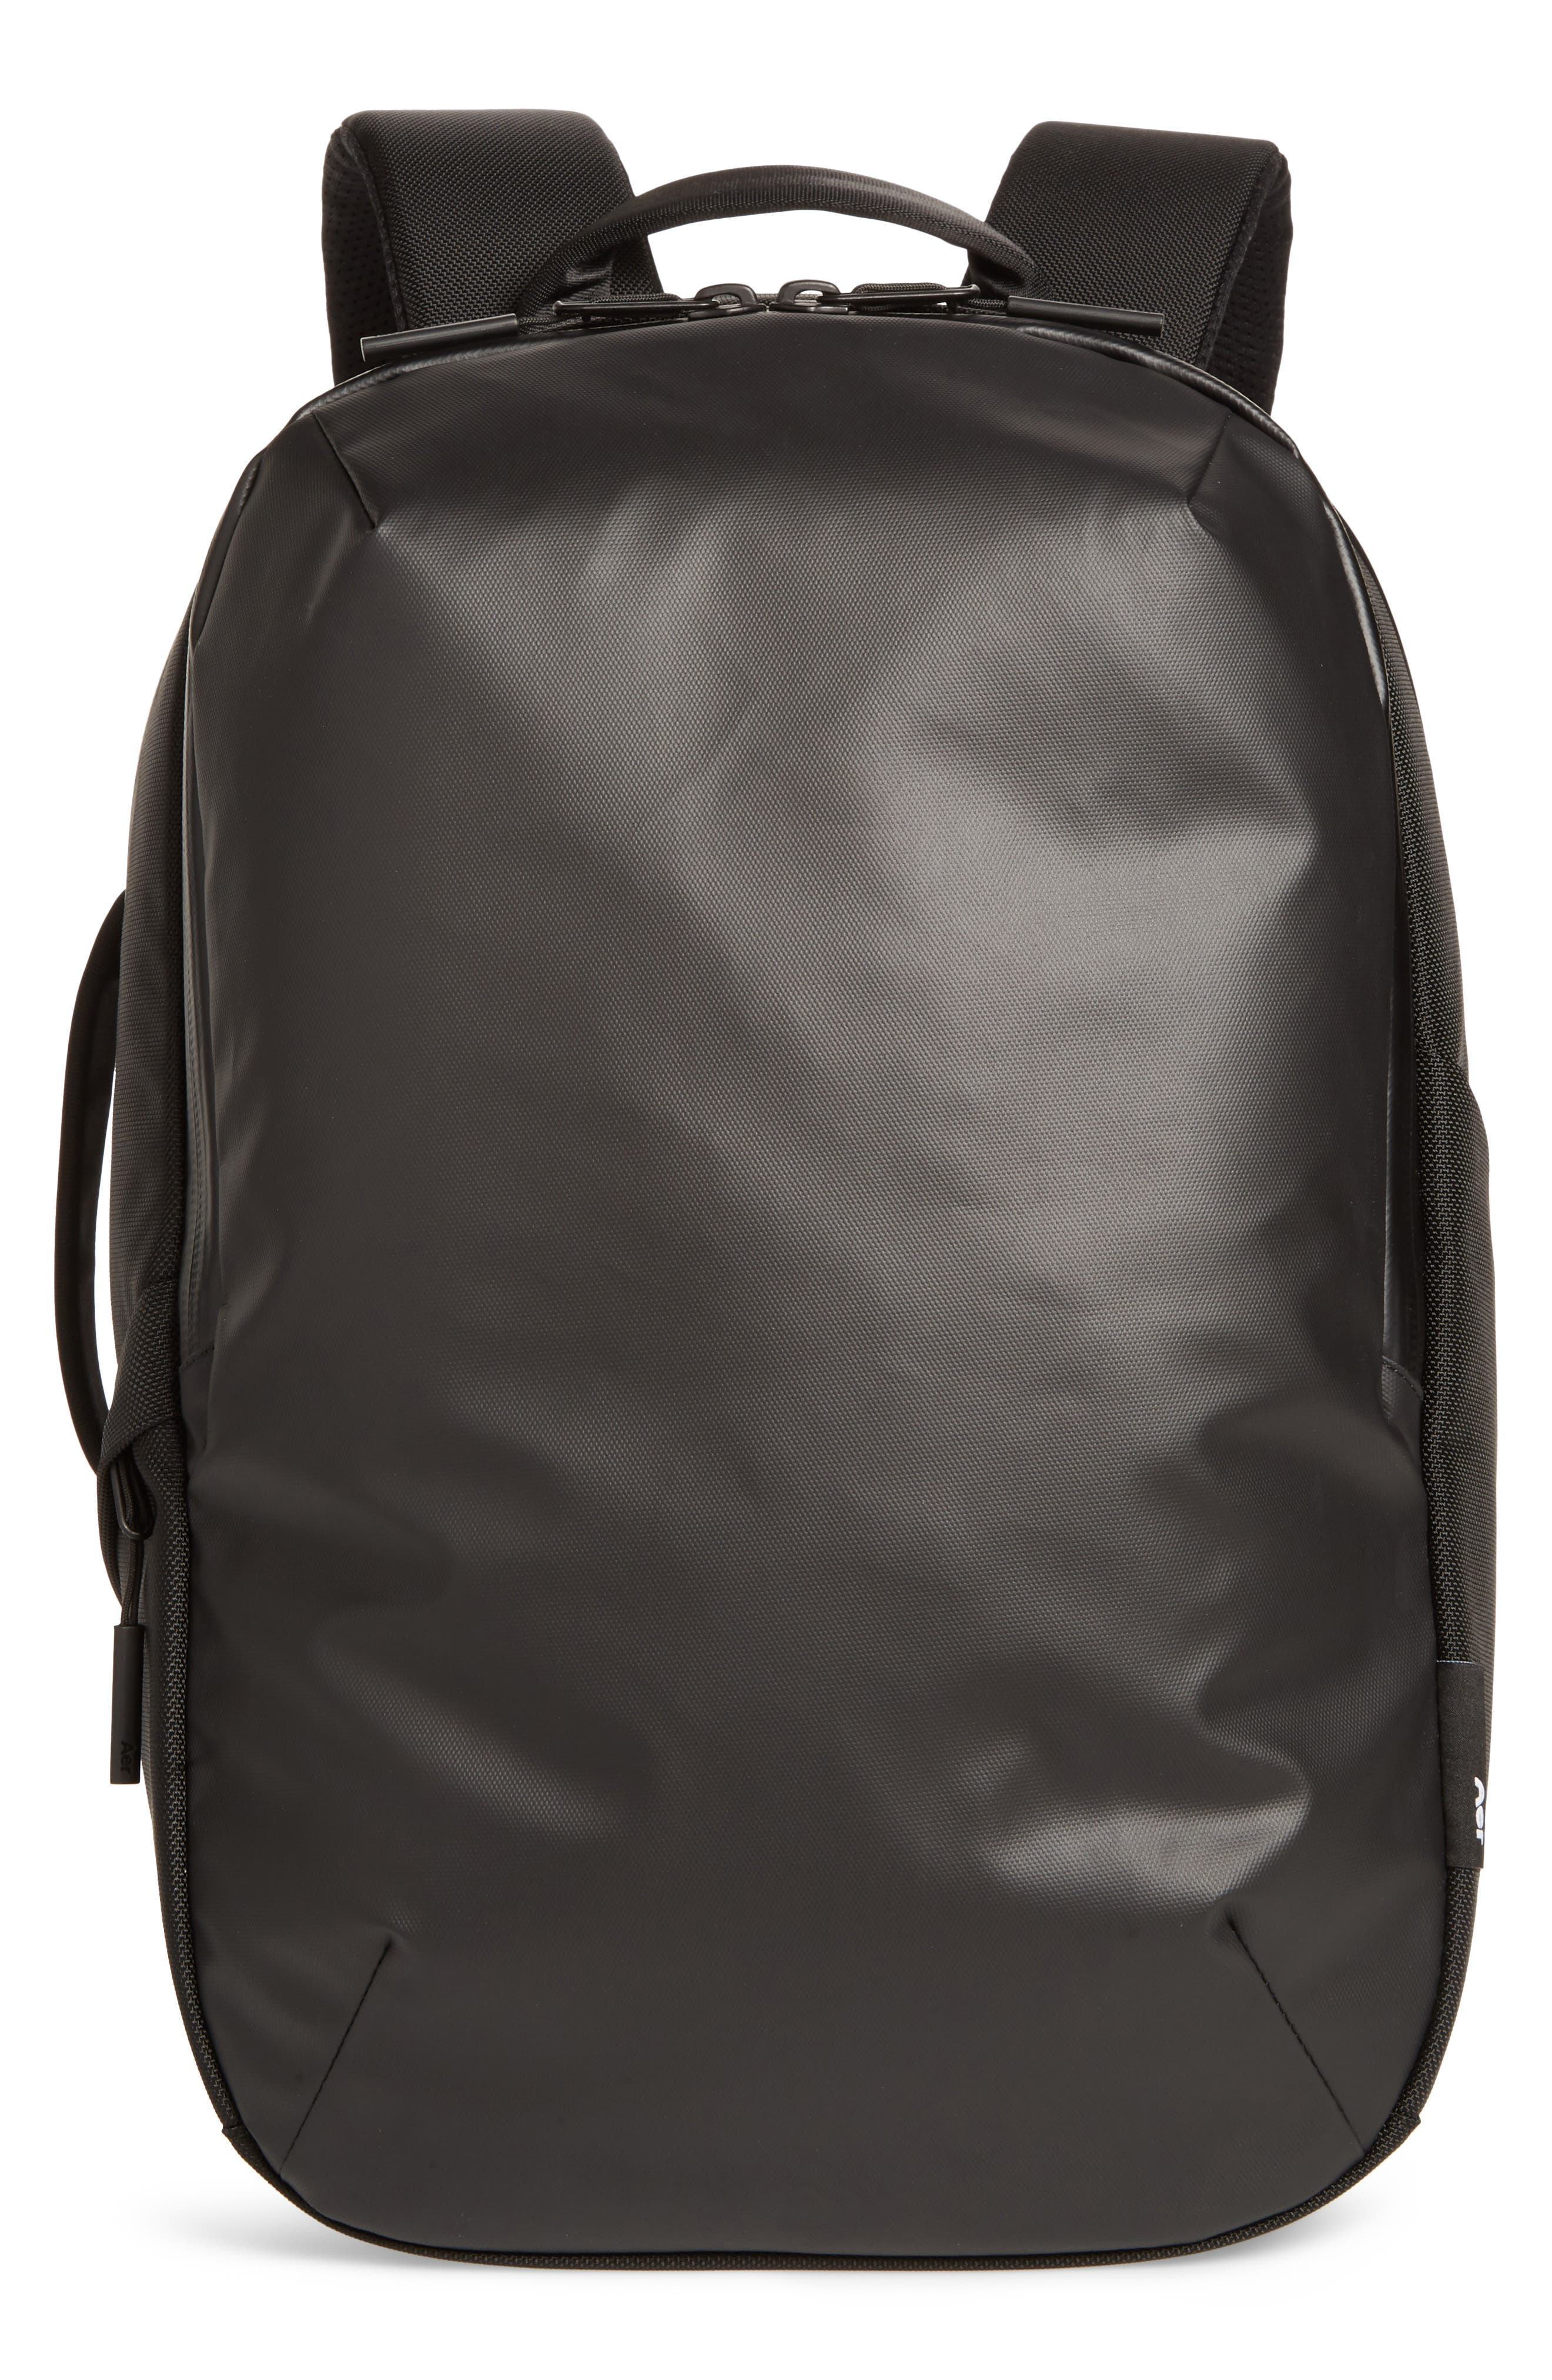 Tech Backpack,                         Main,                         color, 001